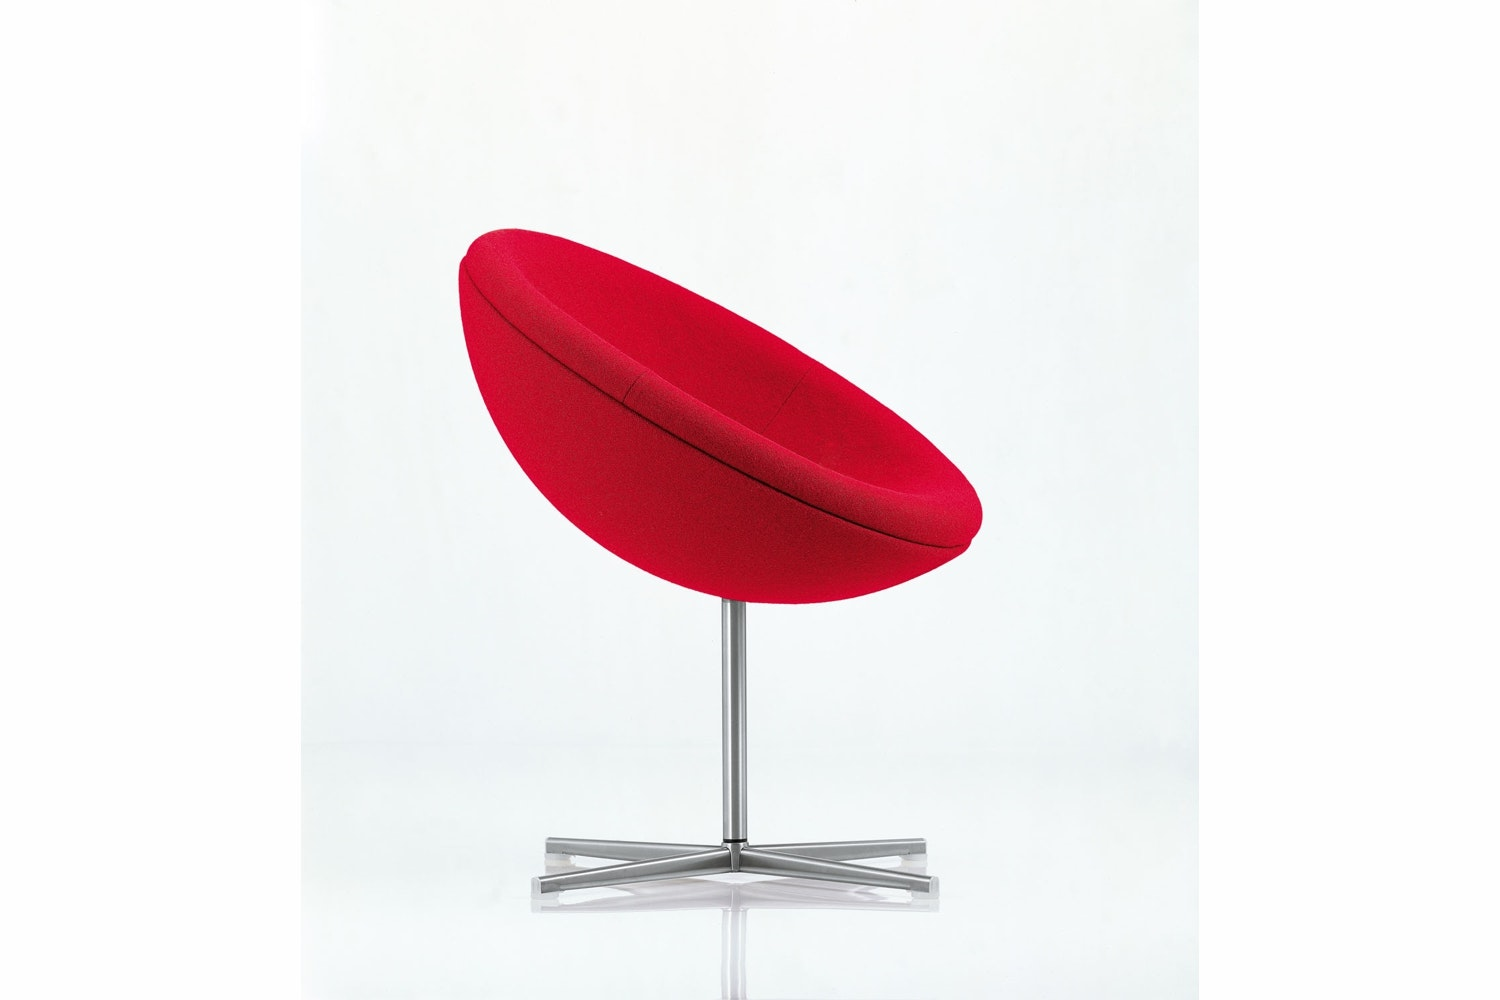 C1 Armchair by Verner Panton for Vitra